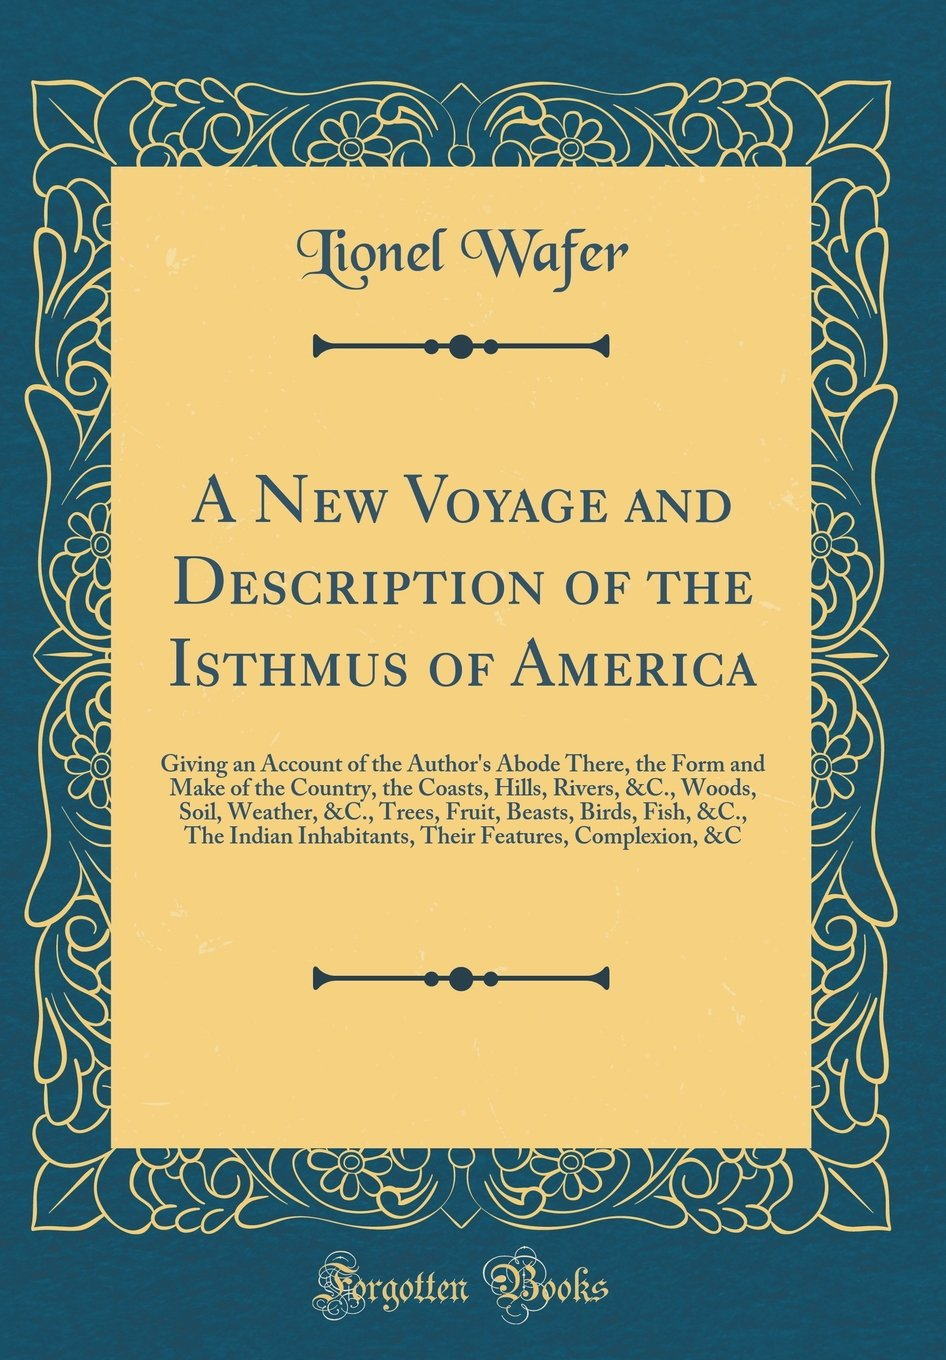 A New Voyage and Description of the Isthmus of America: Giving an Account of the Author's Abode There, the Form and Make of the Country, the Coasts, ... Beasts, Birds, Fish, &C., The Indian Inhabita ebook